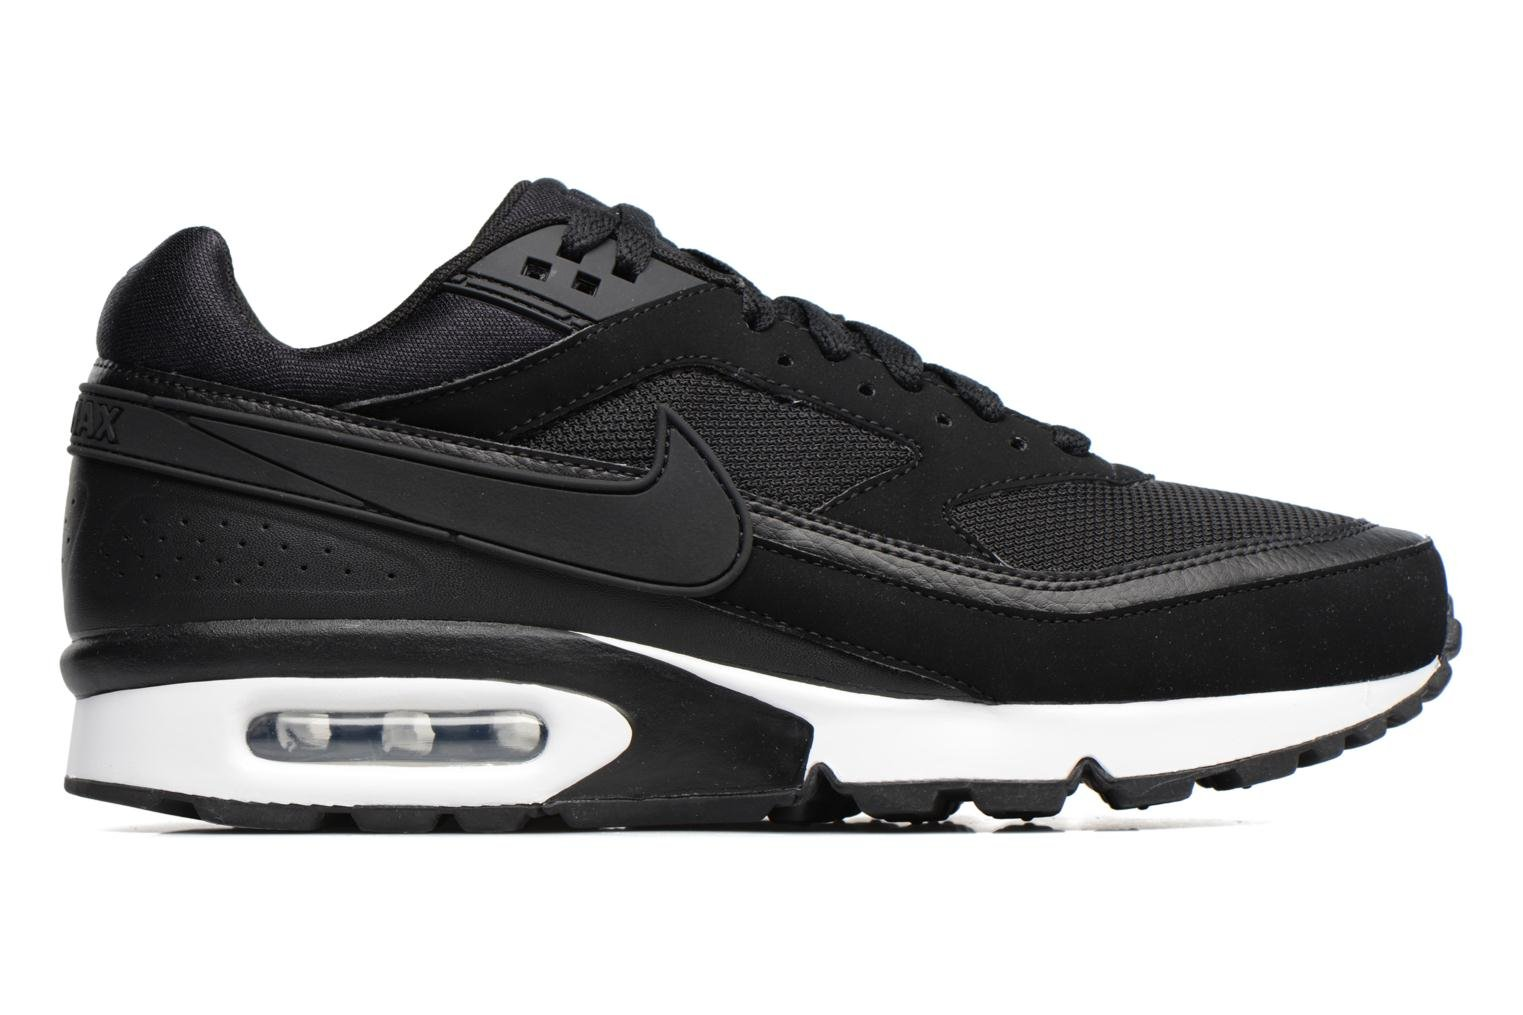 Nike Air Max Bw Black/black-White